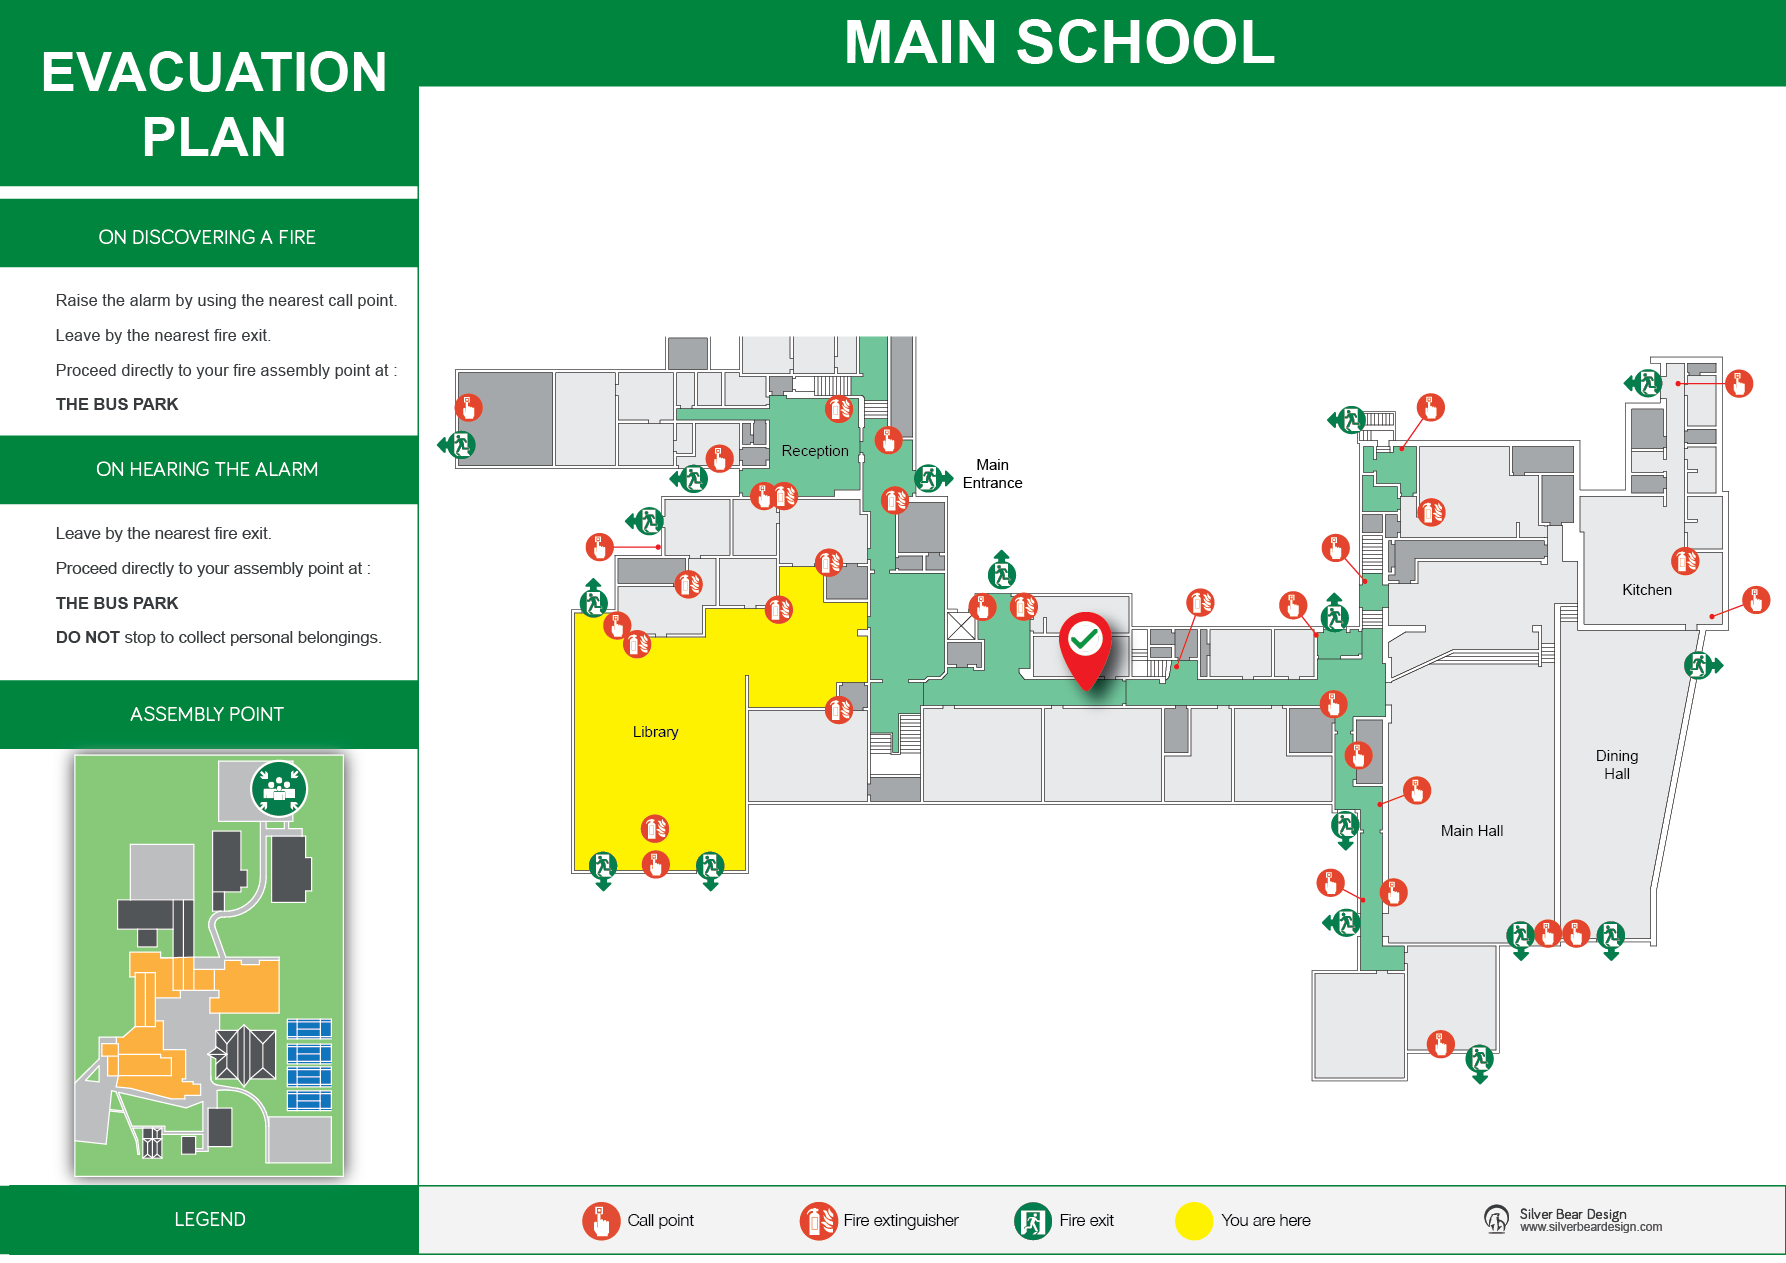 School evacuation plan fire evacuation plans pinterest for How to find a home builder in your area